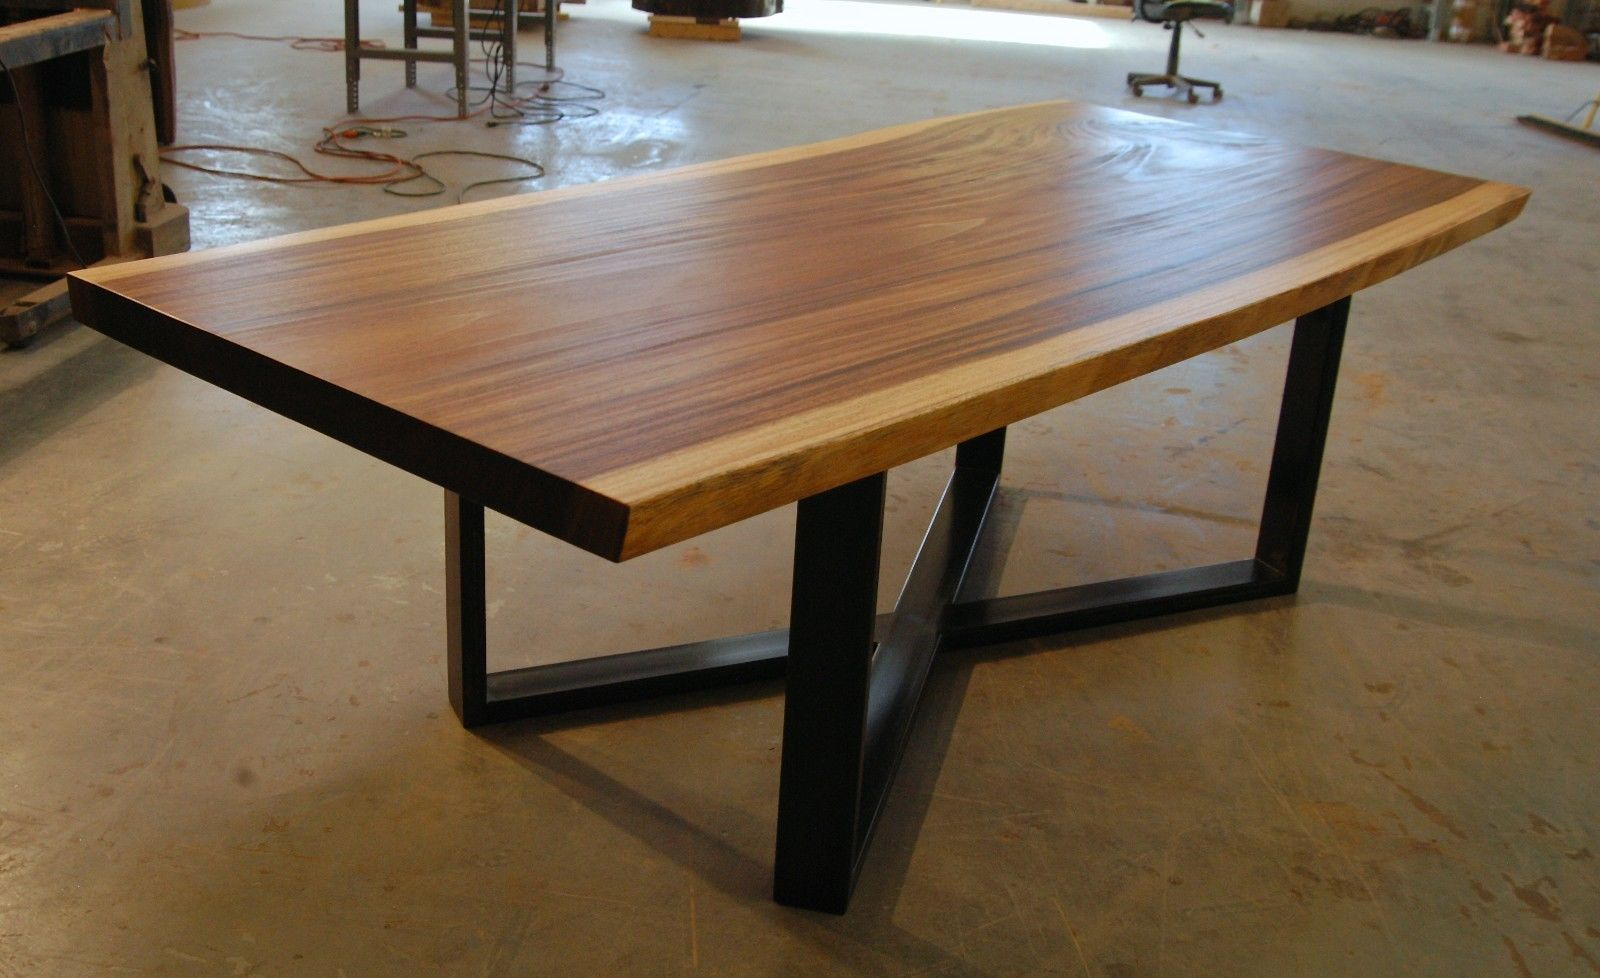 US $3,250.00 New in Home & Garden, Furniture, Tables